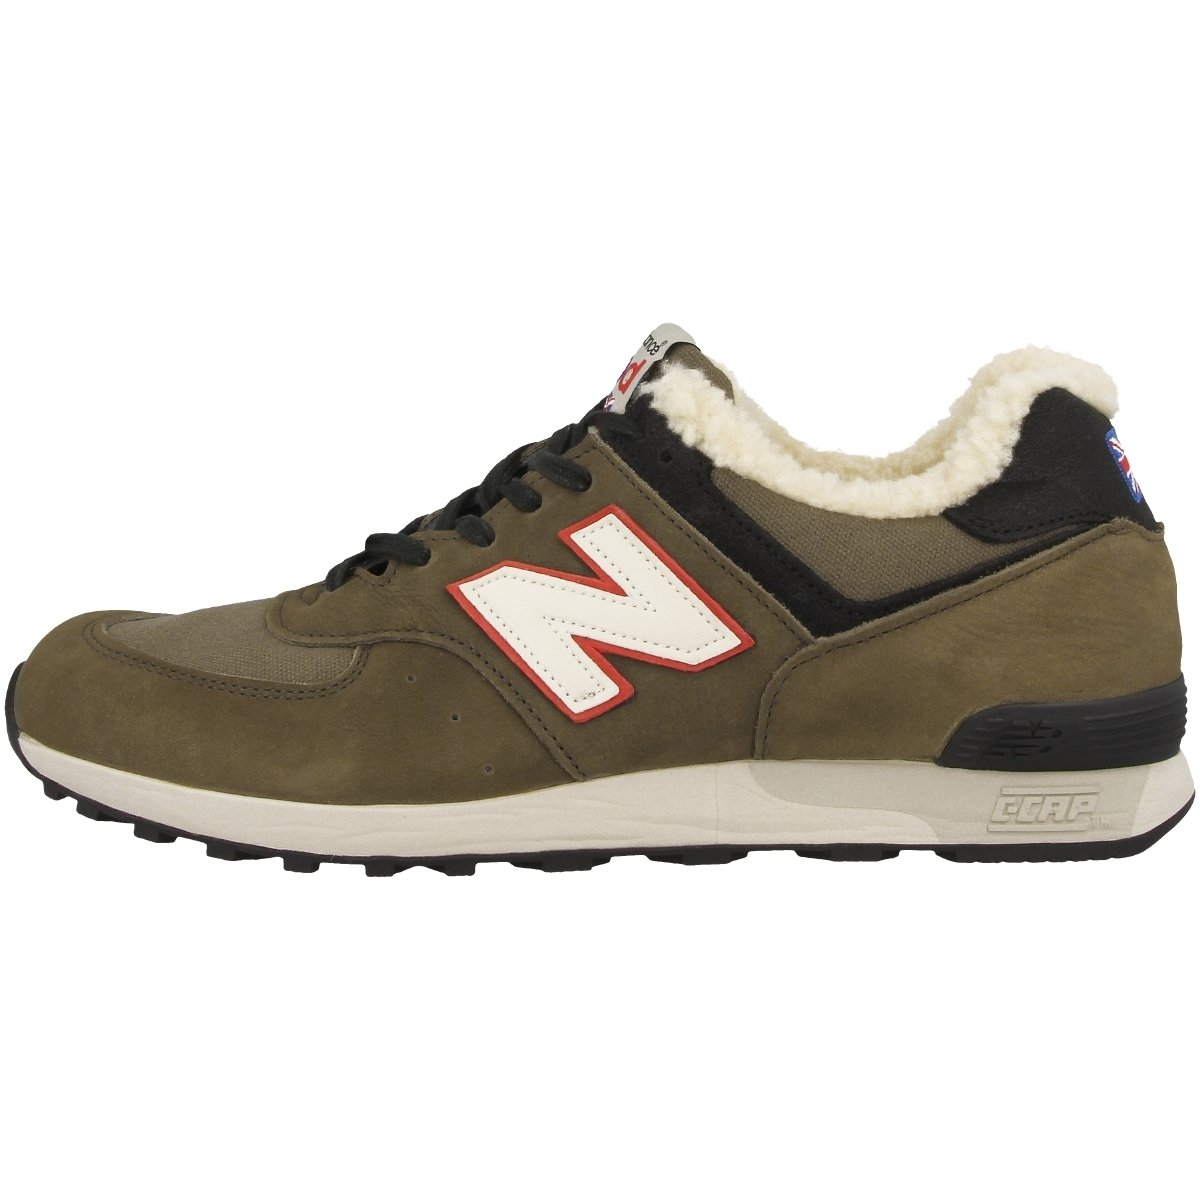 best loved 59847 213c1 New Balance M 576 MOD Made in UK Schuhe army green - 47, 5 ...